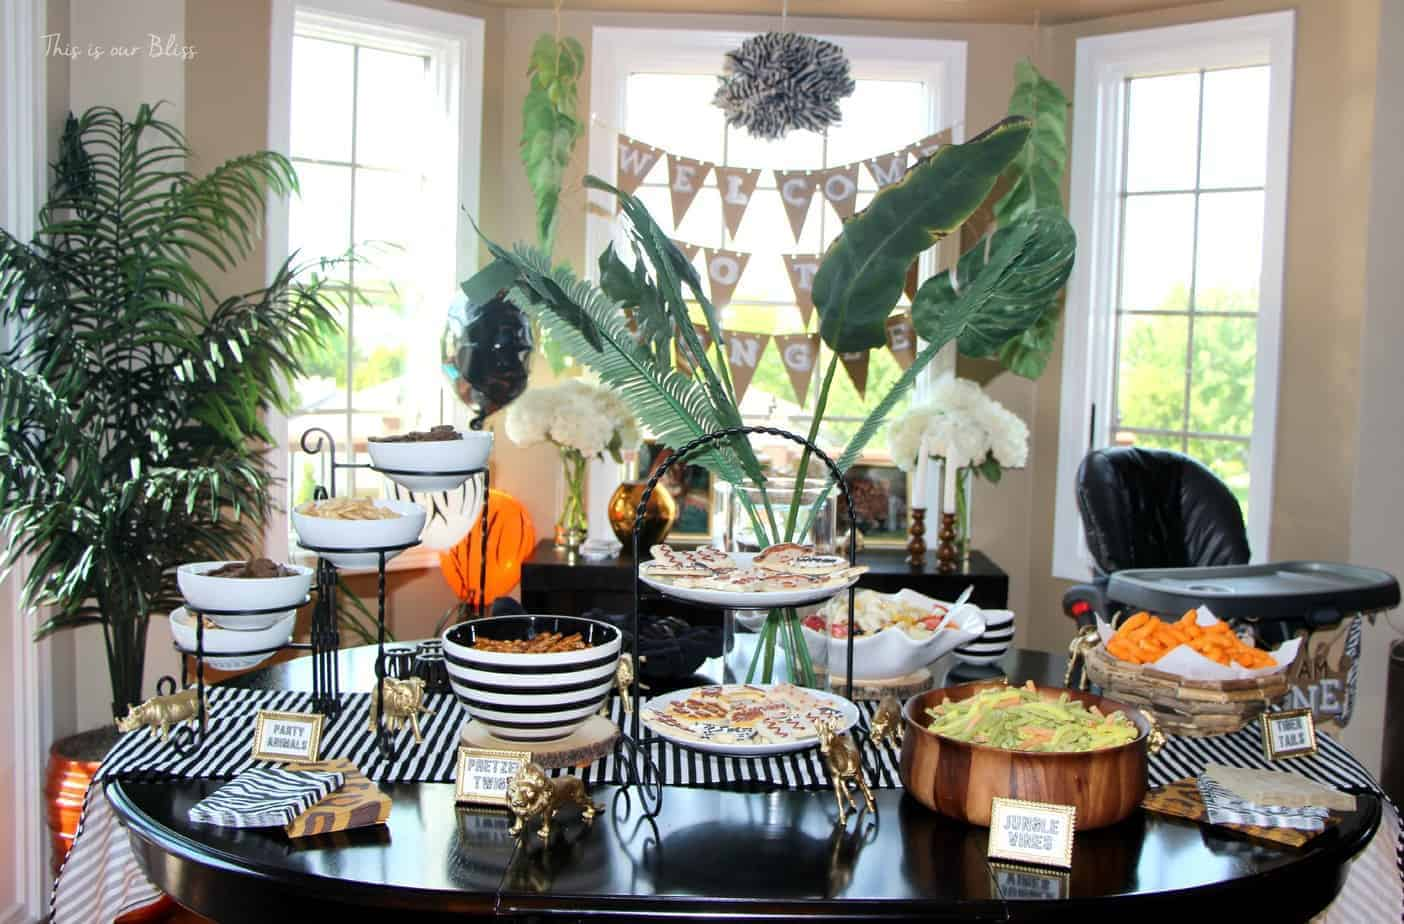 Welcome To The Jungle Safari Birthday Party First Decorations Diy Food Table This Is Our Bliss